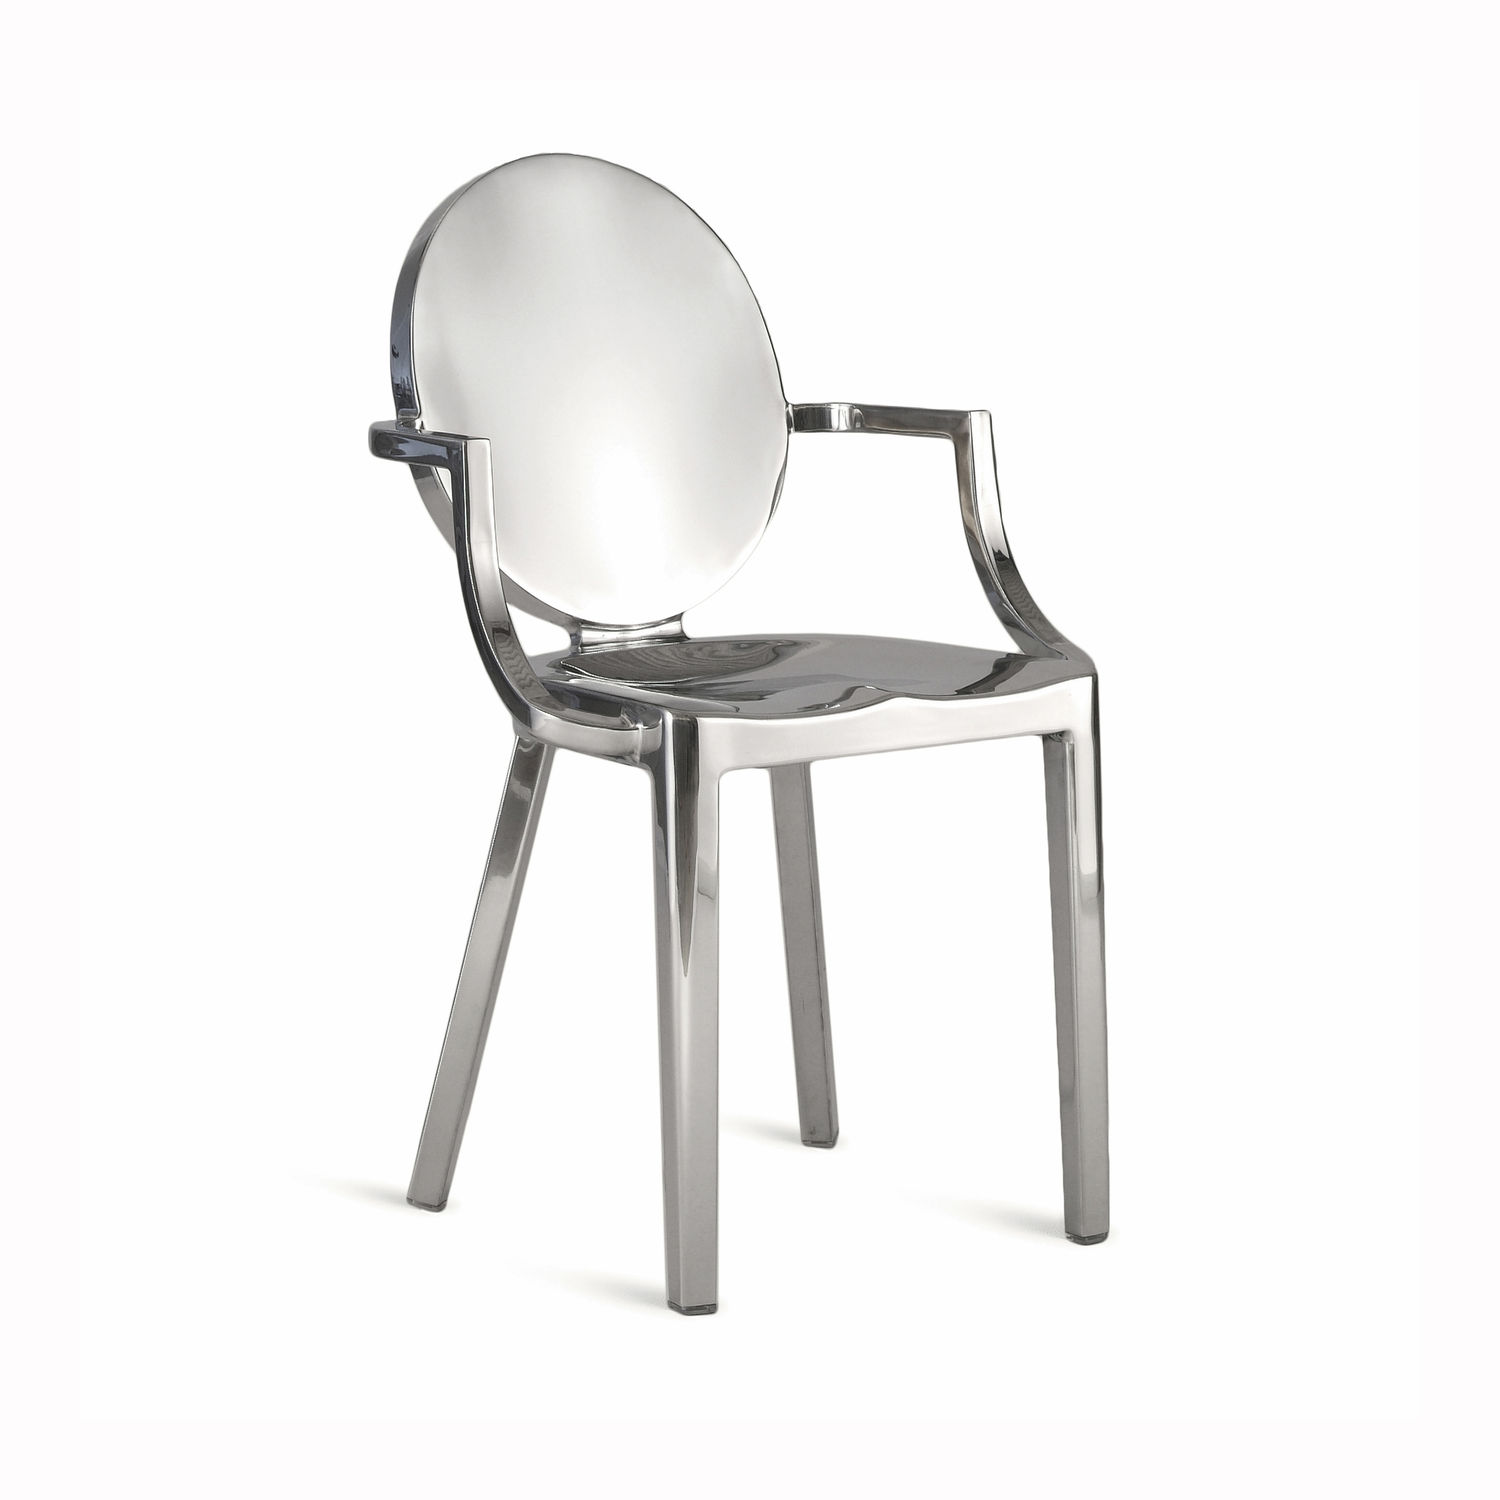 contemporary chair medallion aluminum by philippe starck